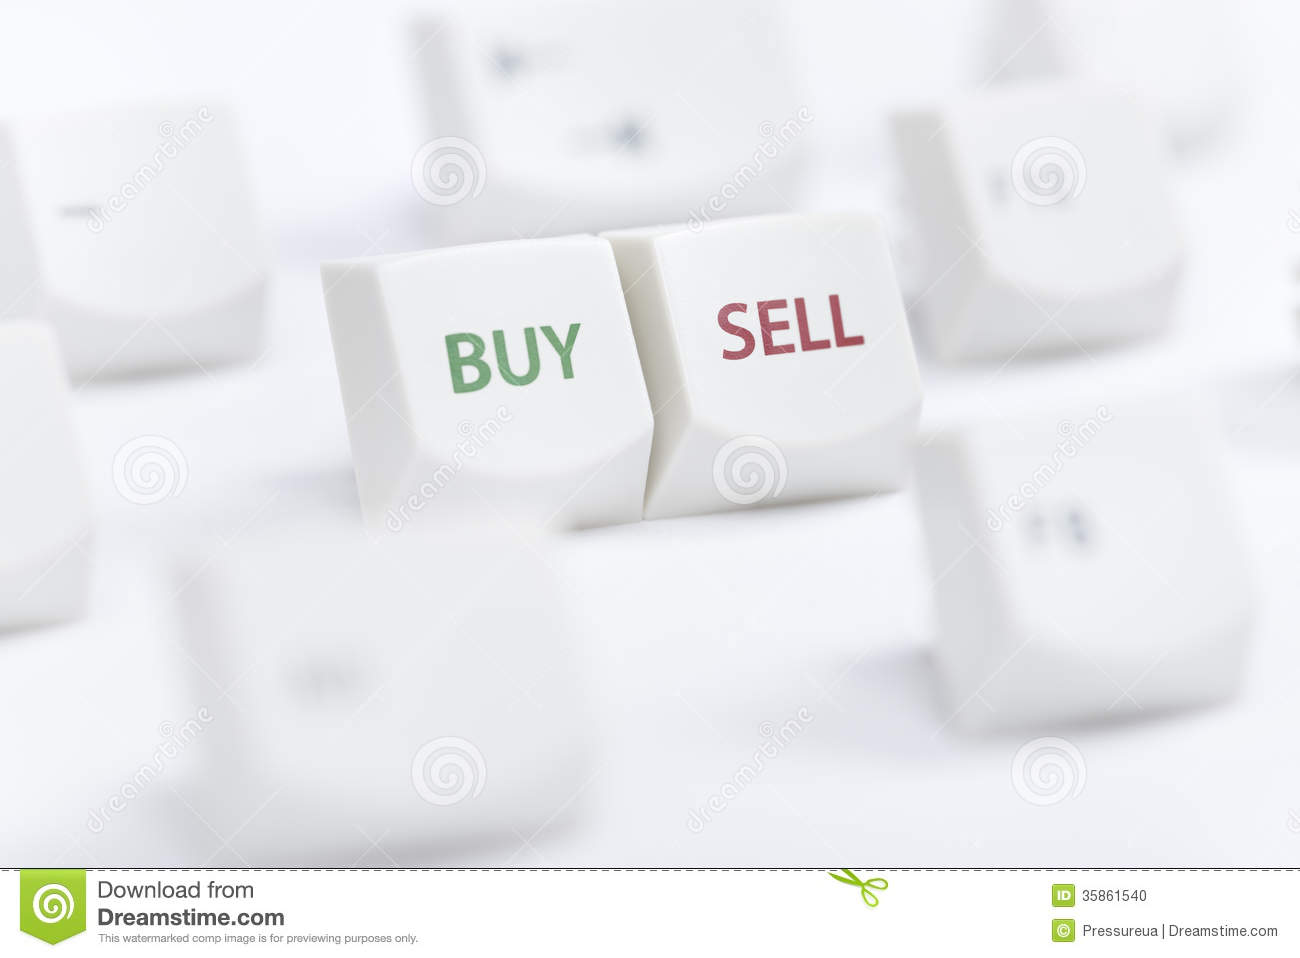 https://thumbs.dreamstime.com/z/buy-sell-concept-computer-keyboard-button-text-sign-white-background-35861540.jpg